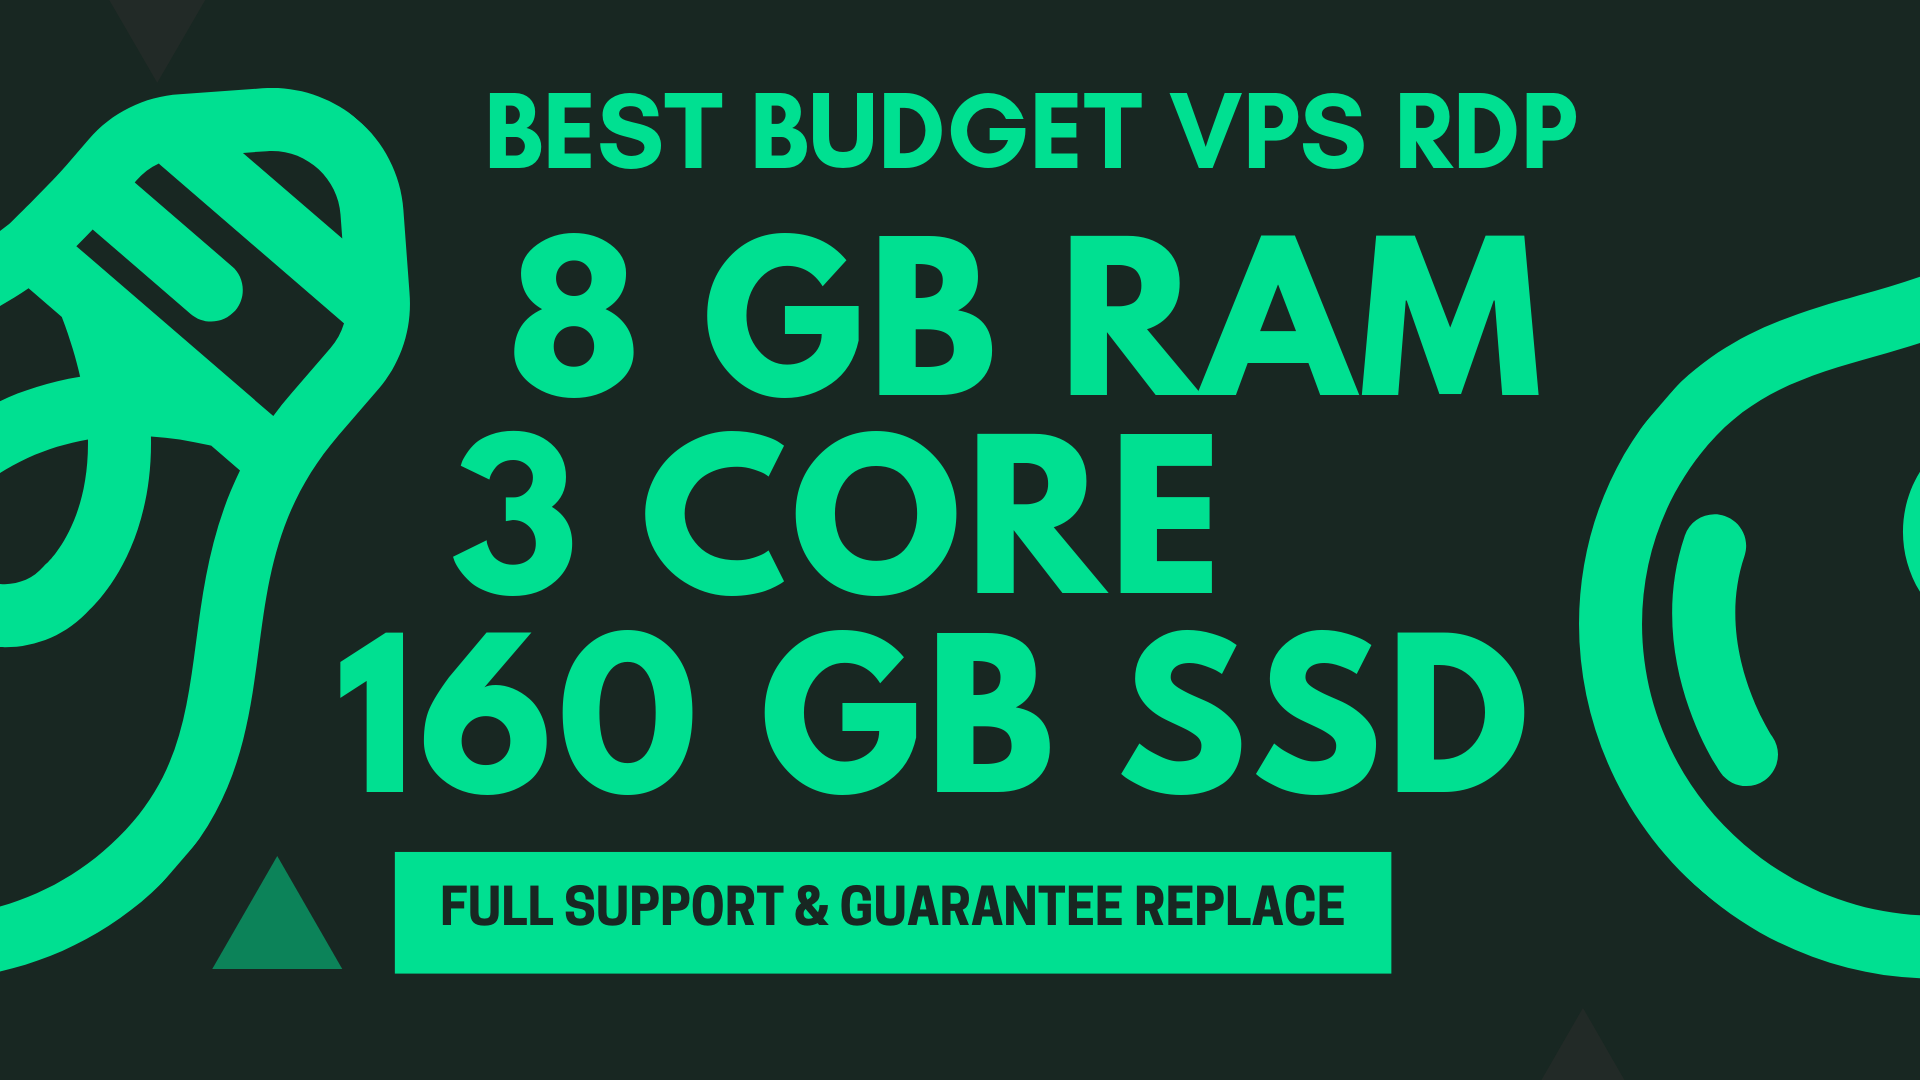 BEST BUDGET WINDOWS RDP VPS 8GB RAM 3CORE 160GB SSD